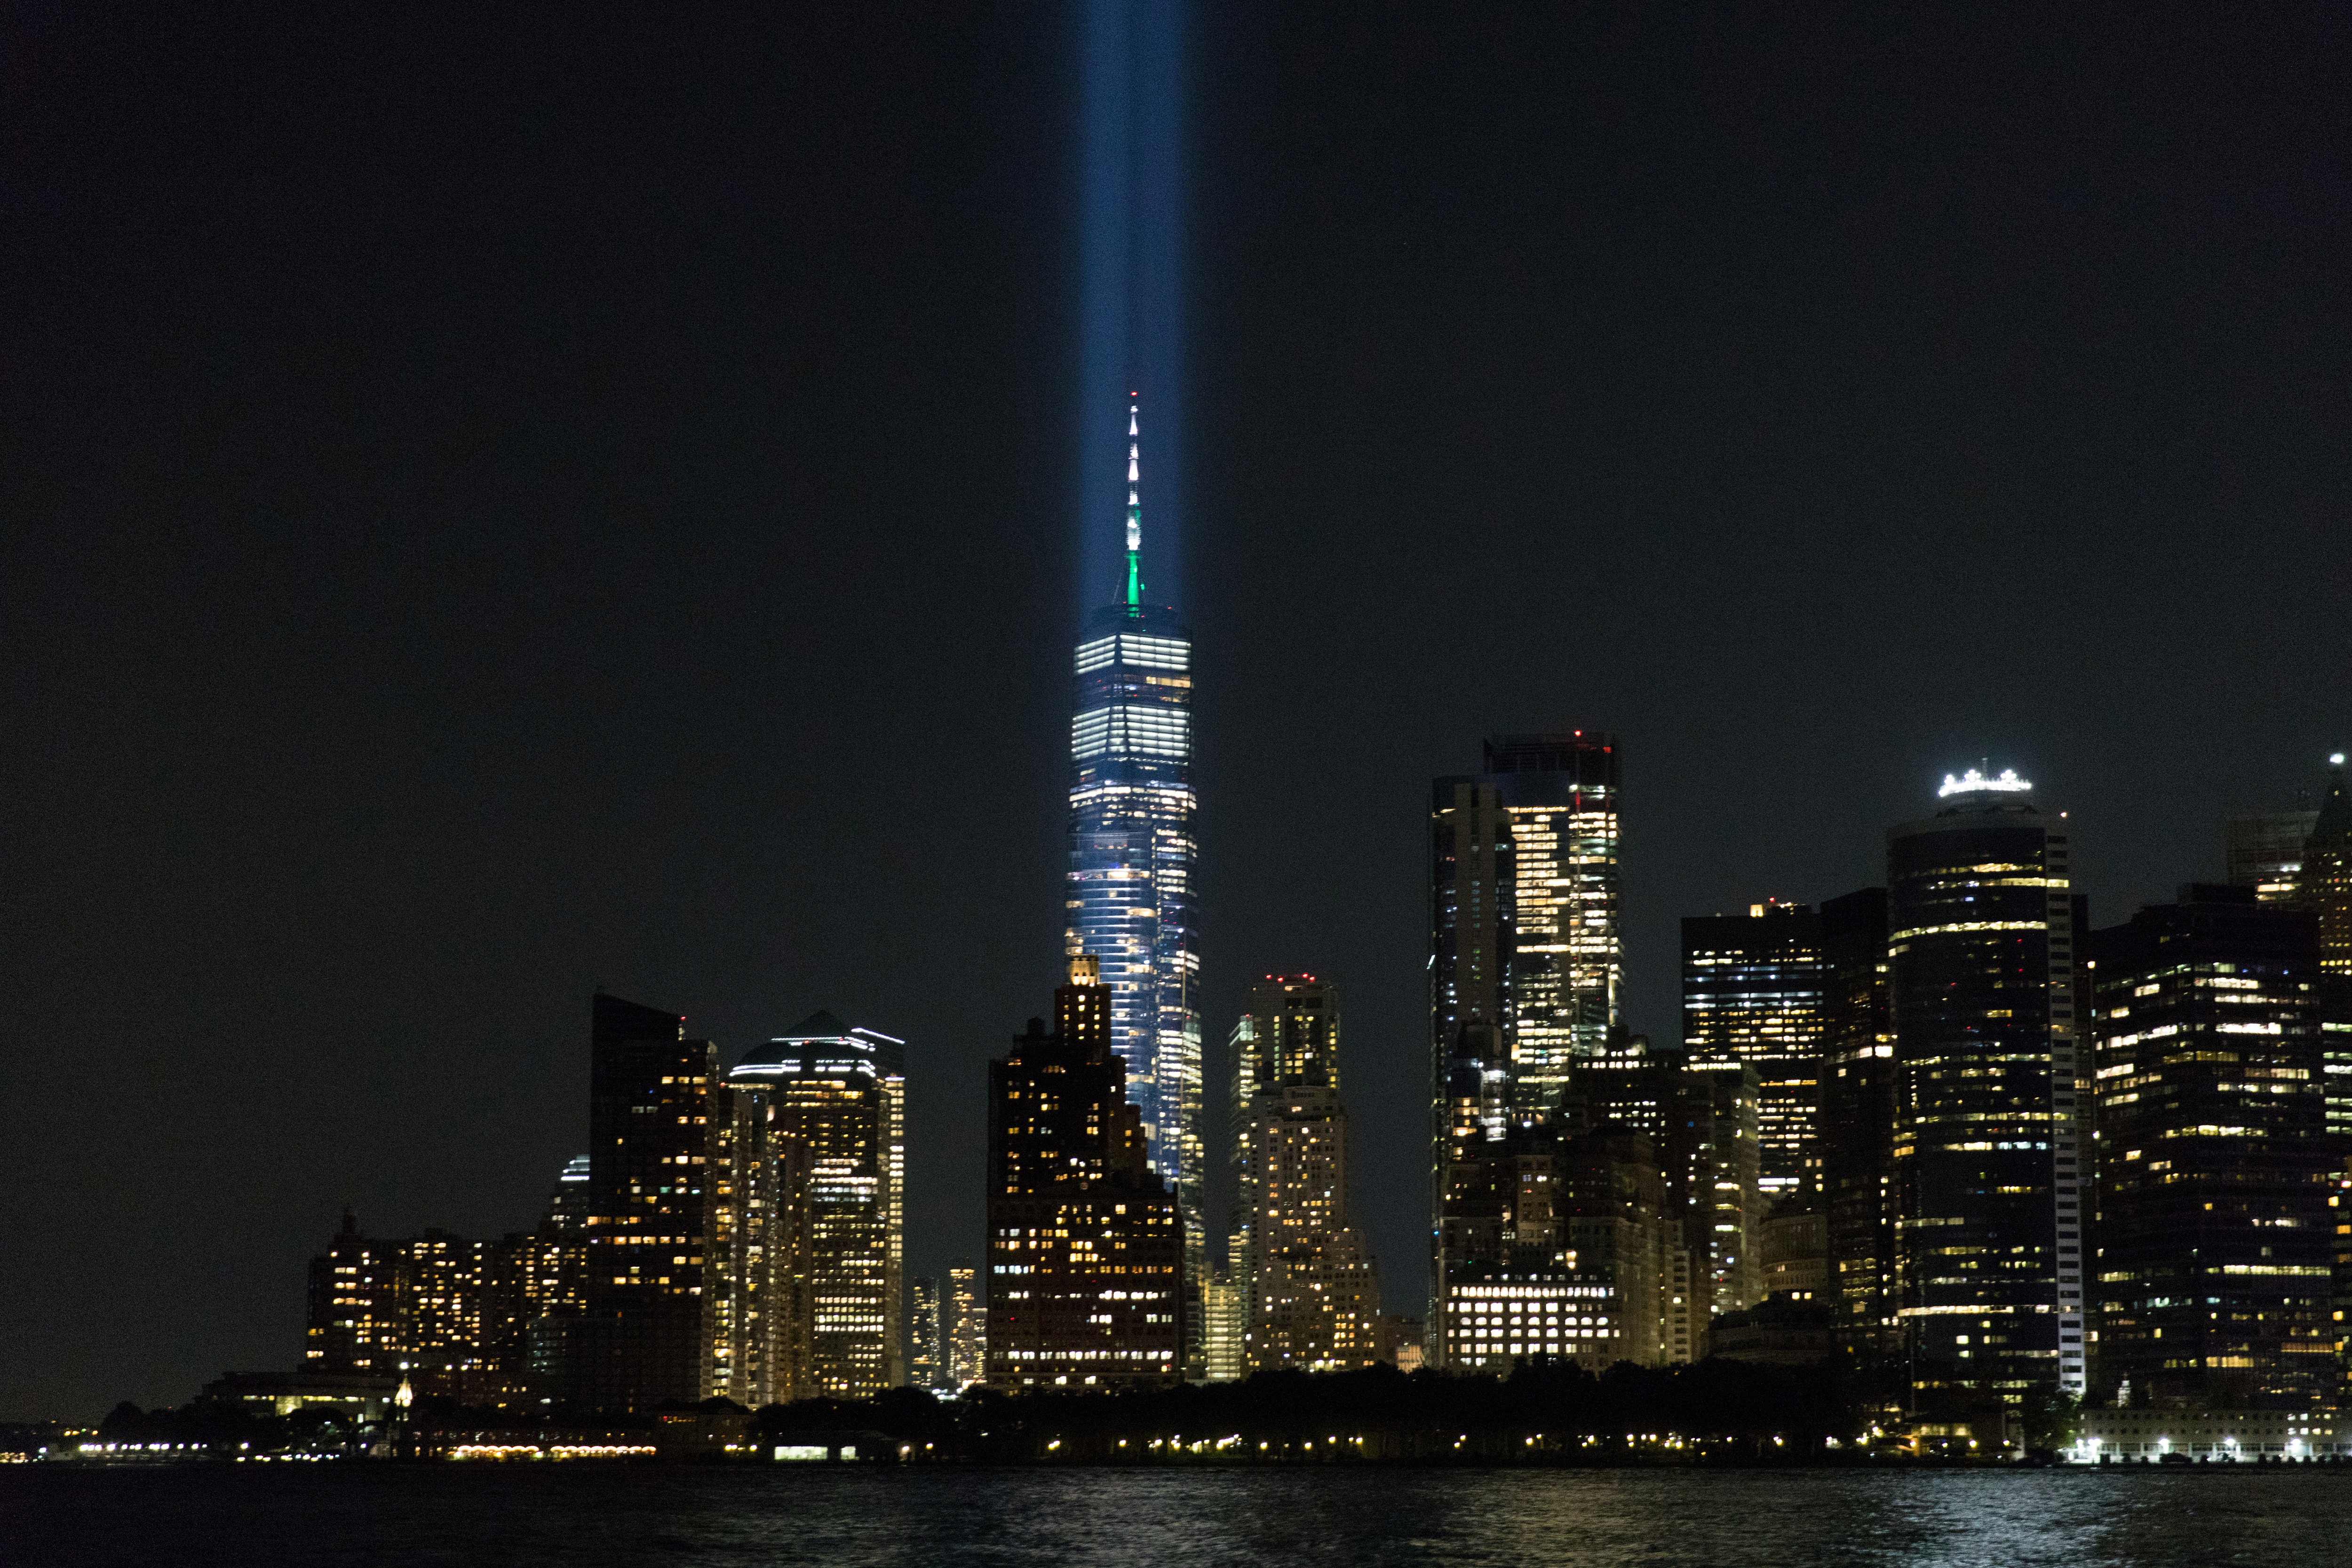 The tribute in lights is tested before the 20th anniversary of the September 11 attacks in New York City, New York, U.S., September 7, 2021.  REUTERS/Bjoern Kils/New York Media Boat